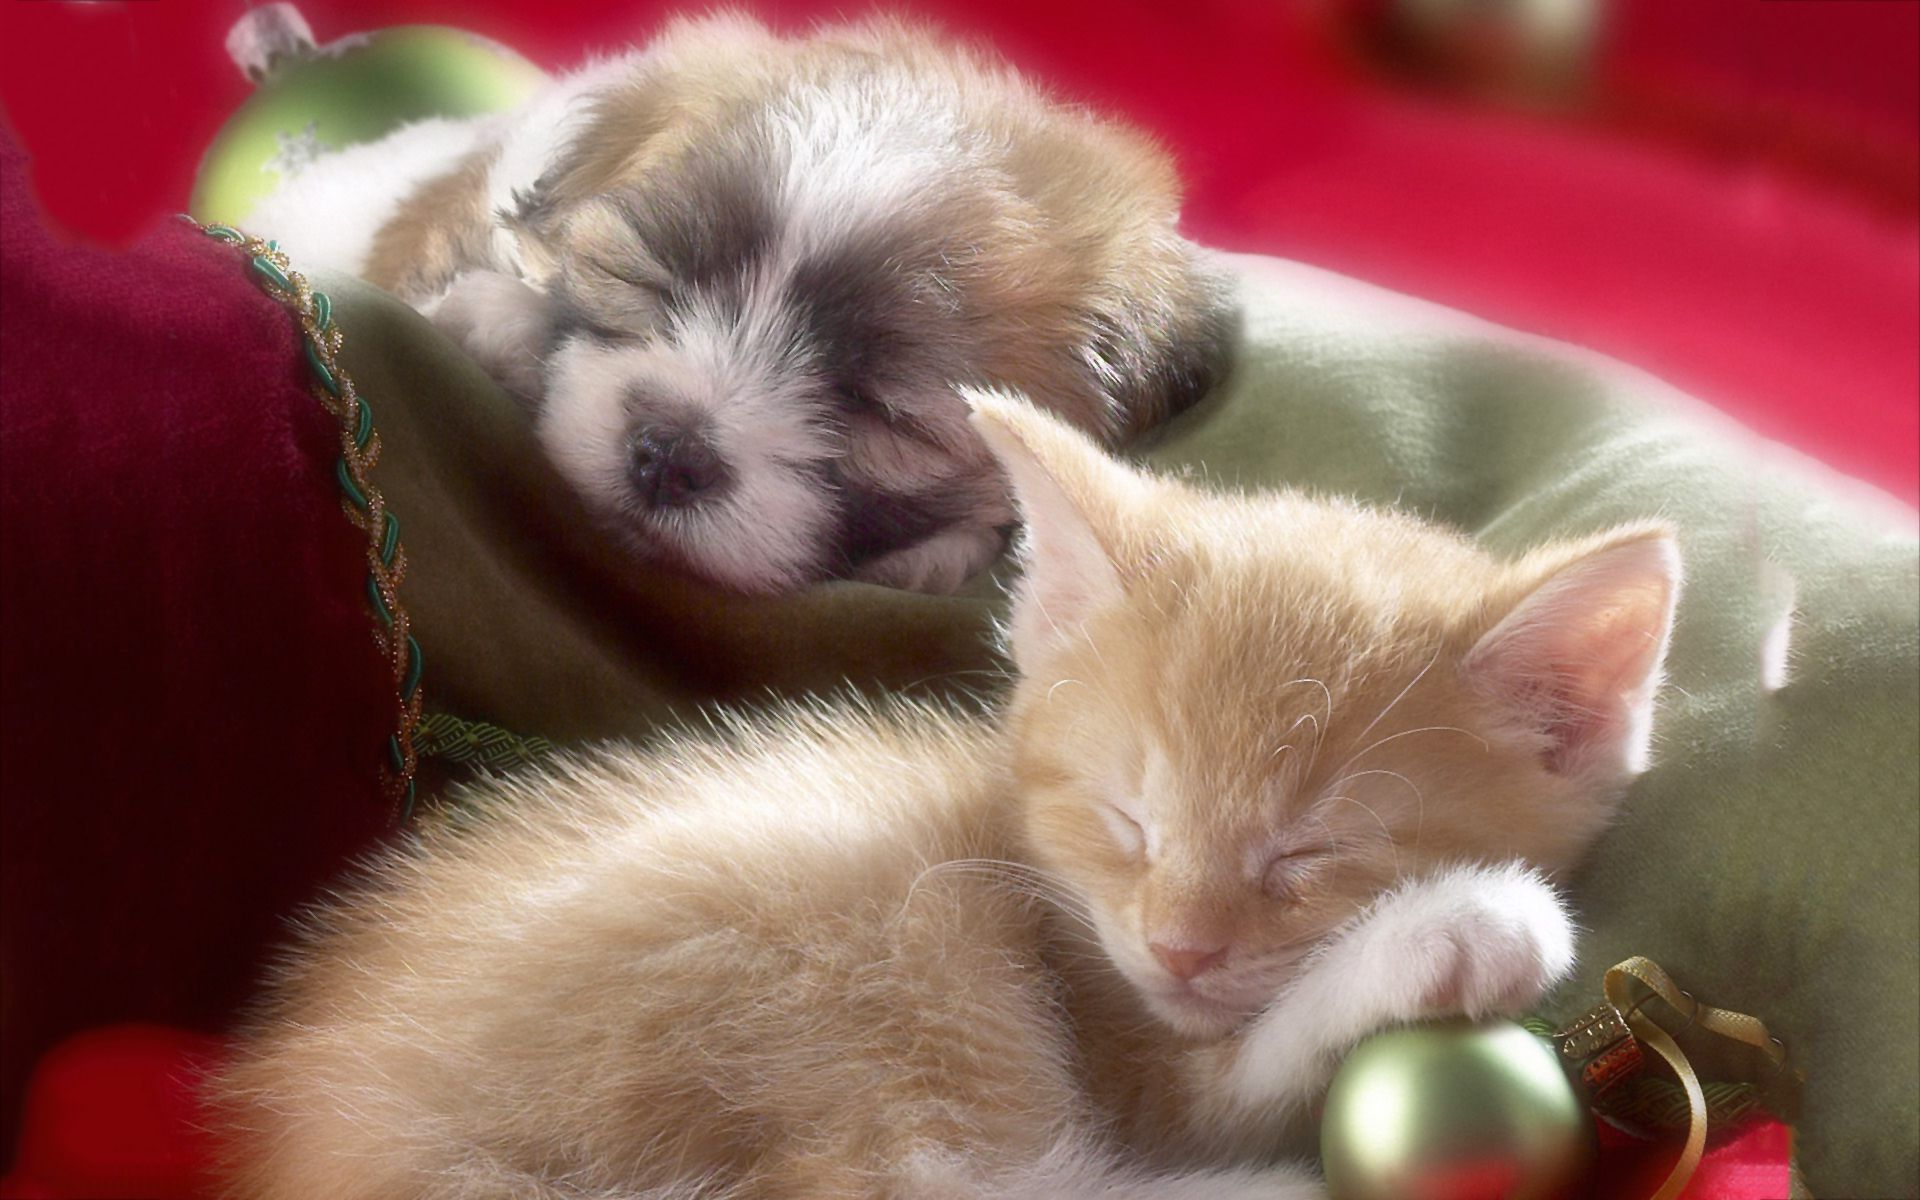 Kitten And Puppy Wallpapers High Quality Resolution Kittens And Puppies Puppy Wallpaper Cute Animals